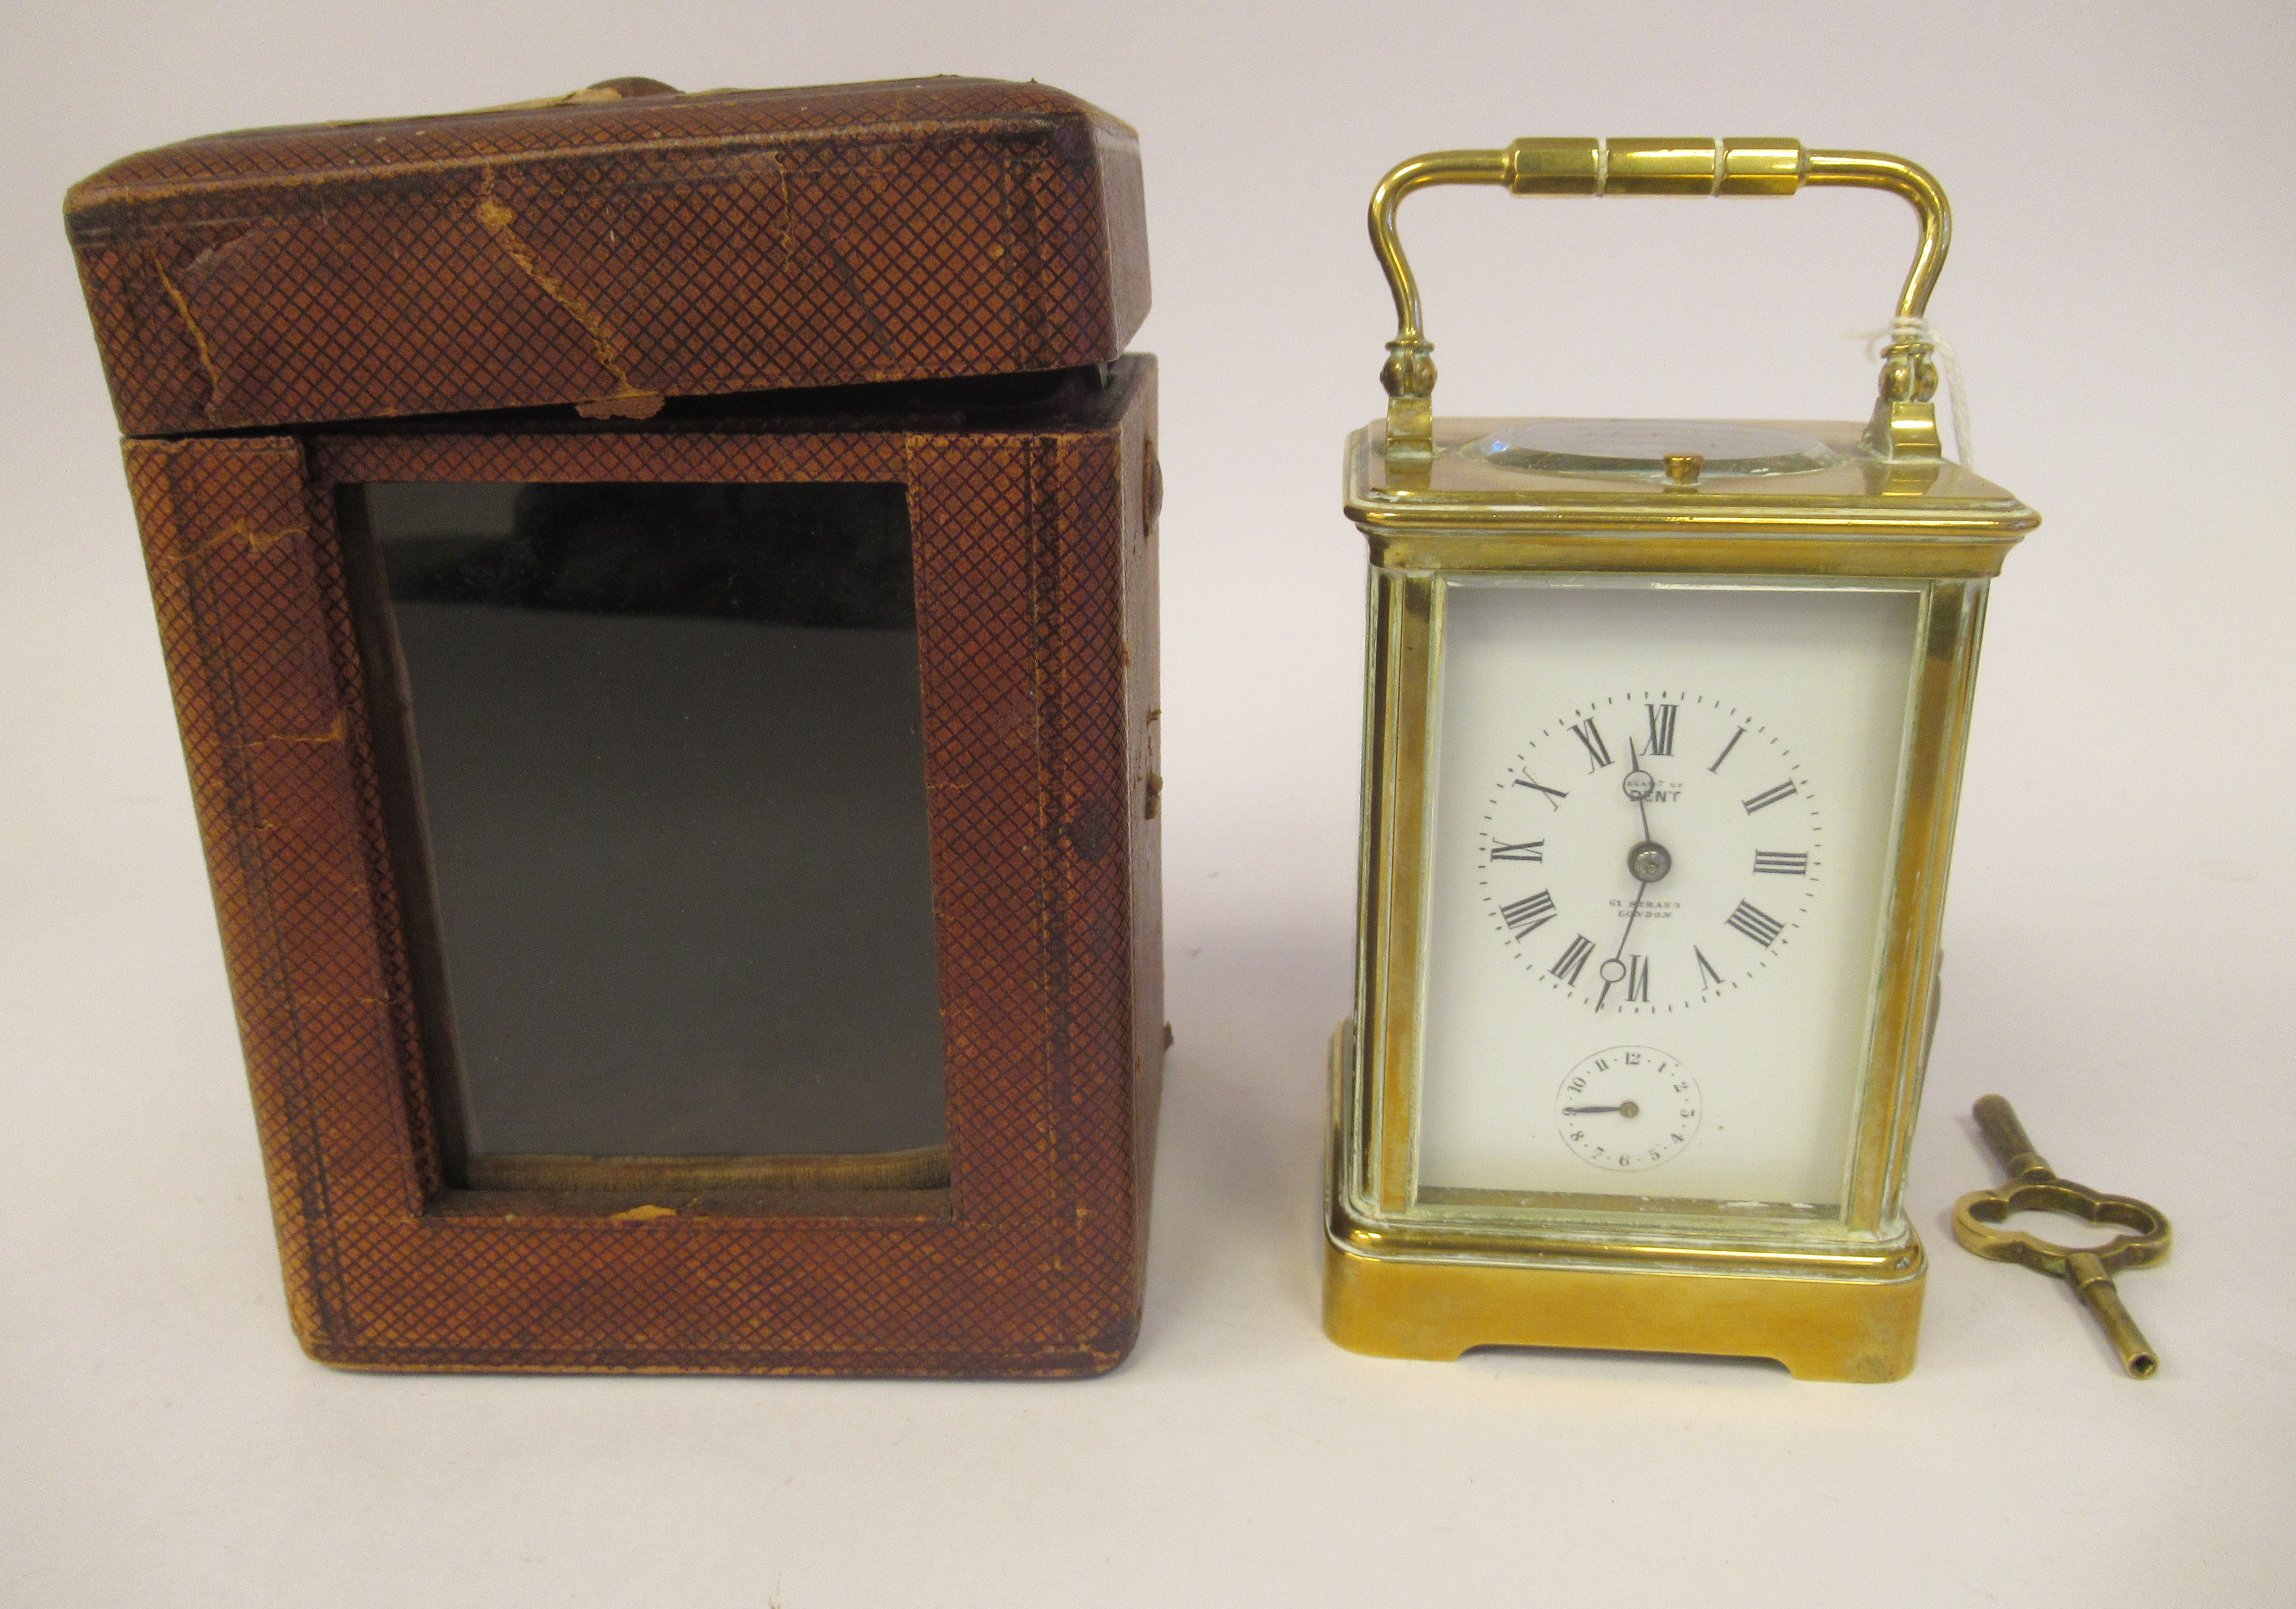 An early 20thC brass cased carriage clock with bevelled glass panels, a folding top handle, on a